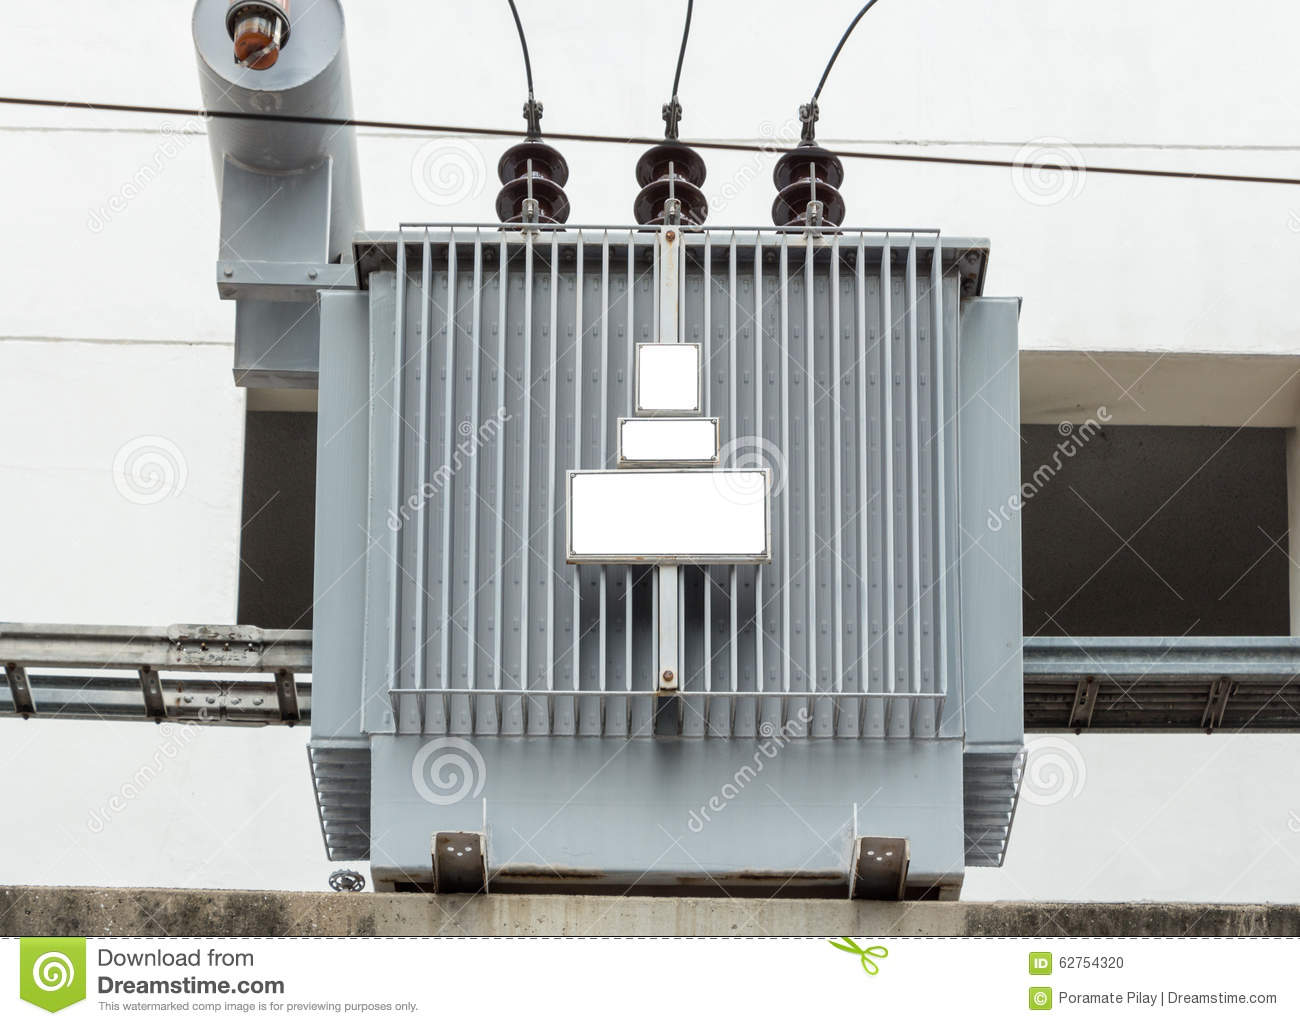 Distribution electrical transformer